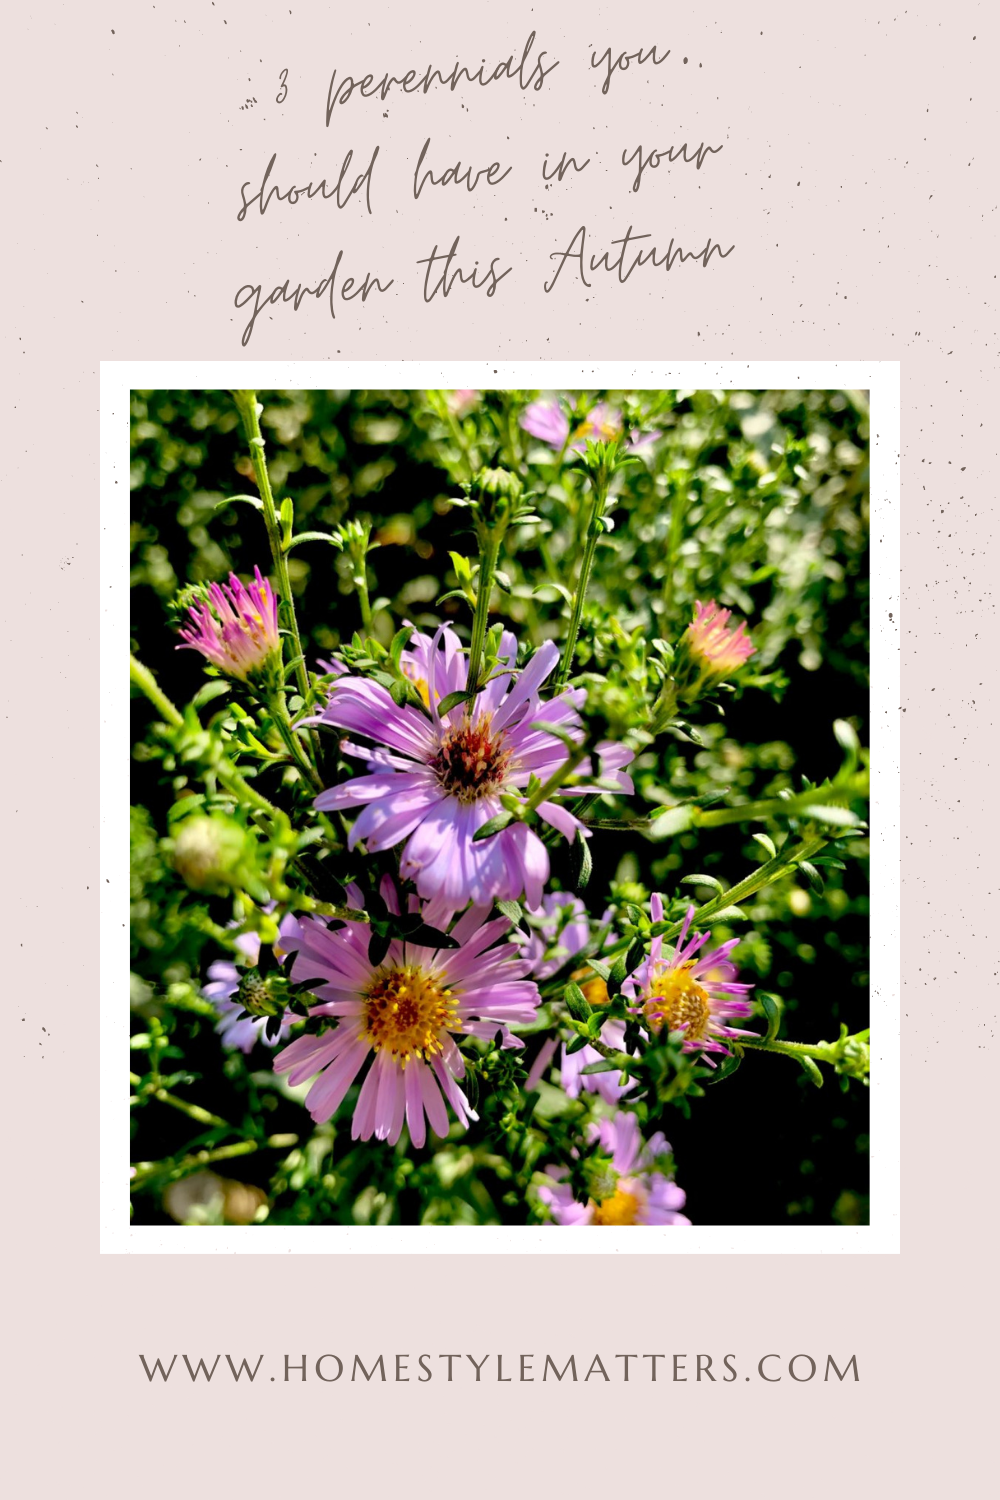 3 Perennials You Should Have in your Garden this Autumn 3